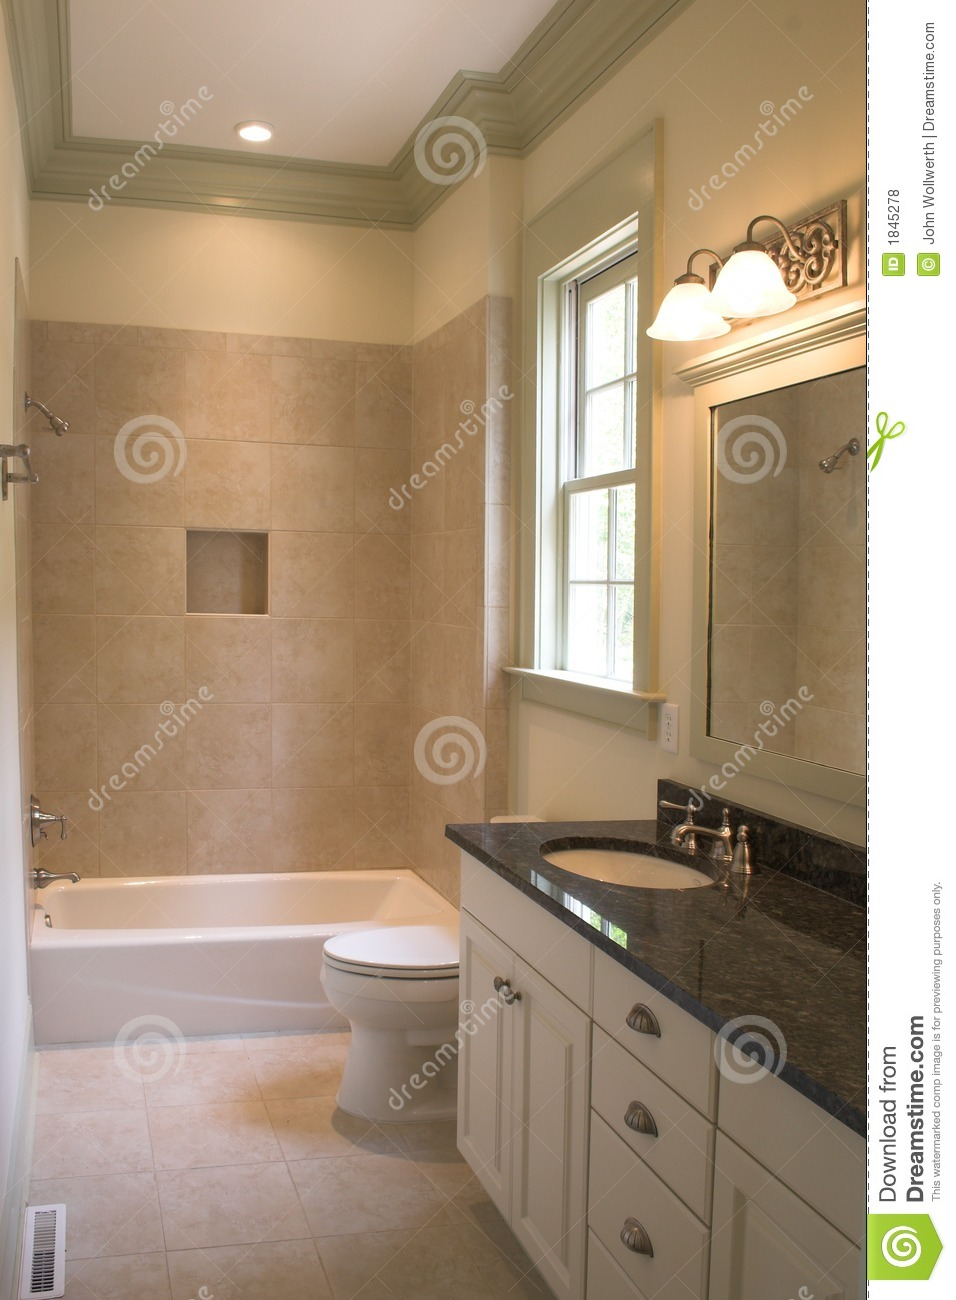 Simple bathroom with tile and stone stock photo image of for House simple restroom design